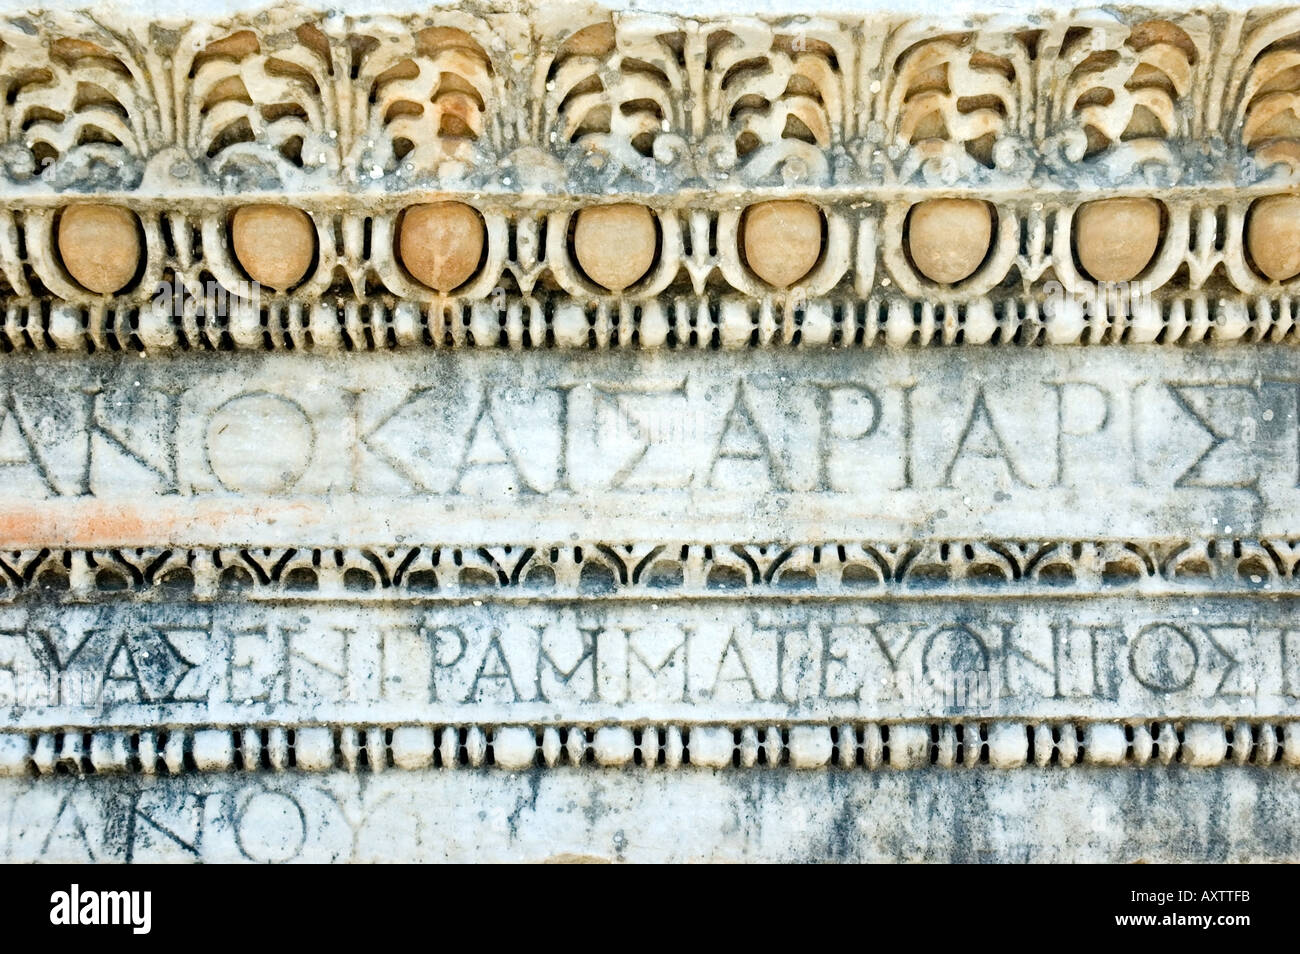 An intricately carved stone frieze depicting Greek writing and script design, in the city of Ephesus, Turkey. DSC_6700 - Stock Image